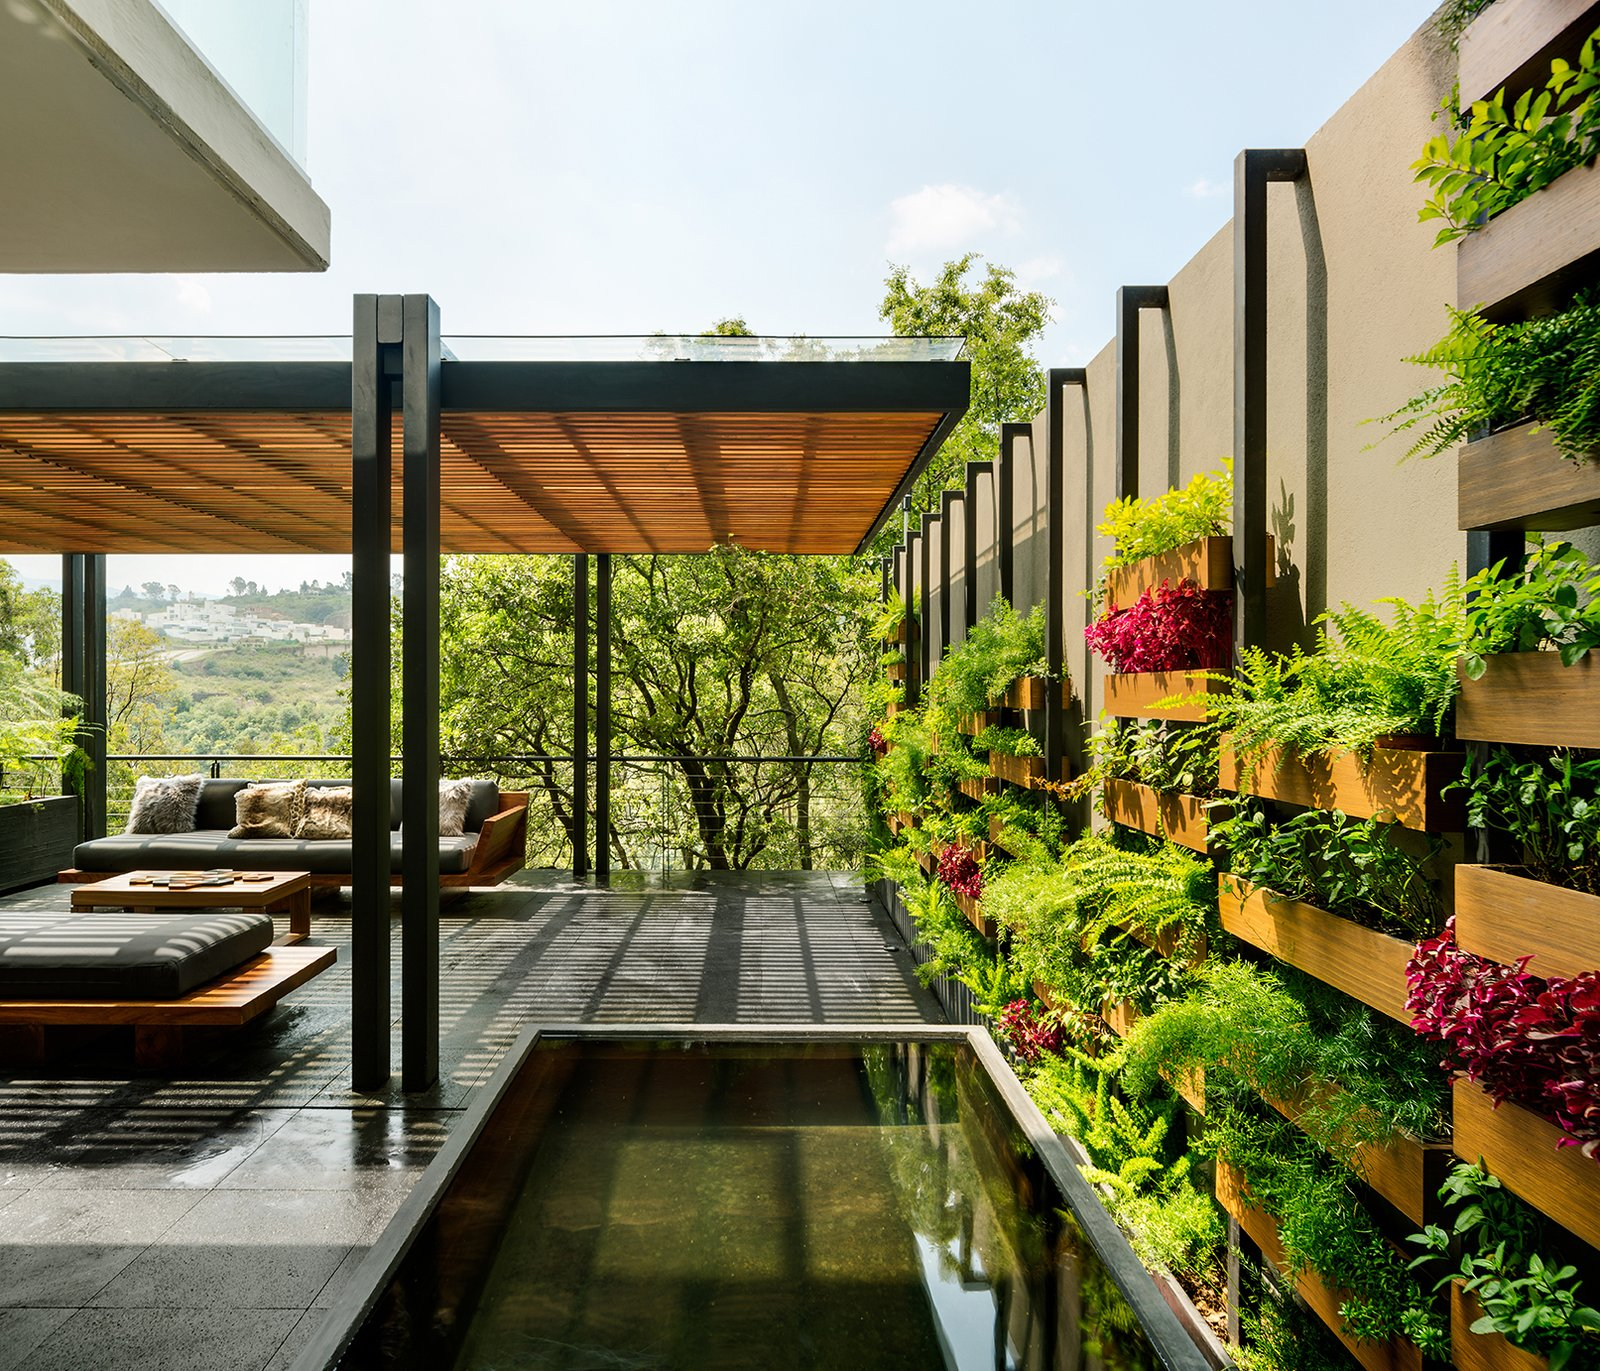 Outdoor, Rooftop, Trees, Shrubs, Large Pools, Tubs, Shower, and Flowers  Villa Jardín by ASP Arquitectura Sergio Portillo